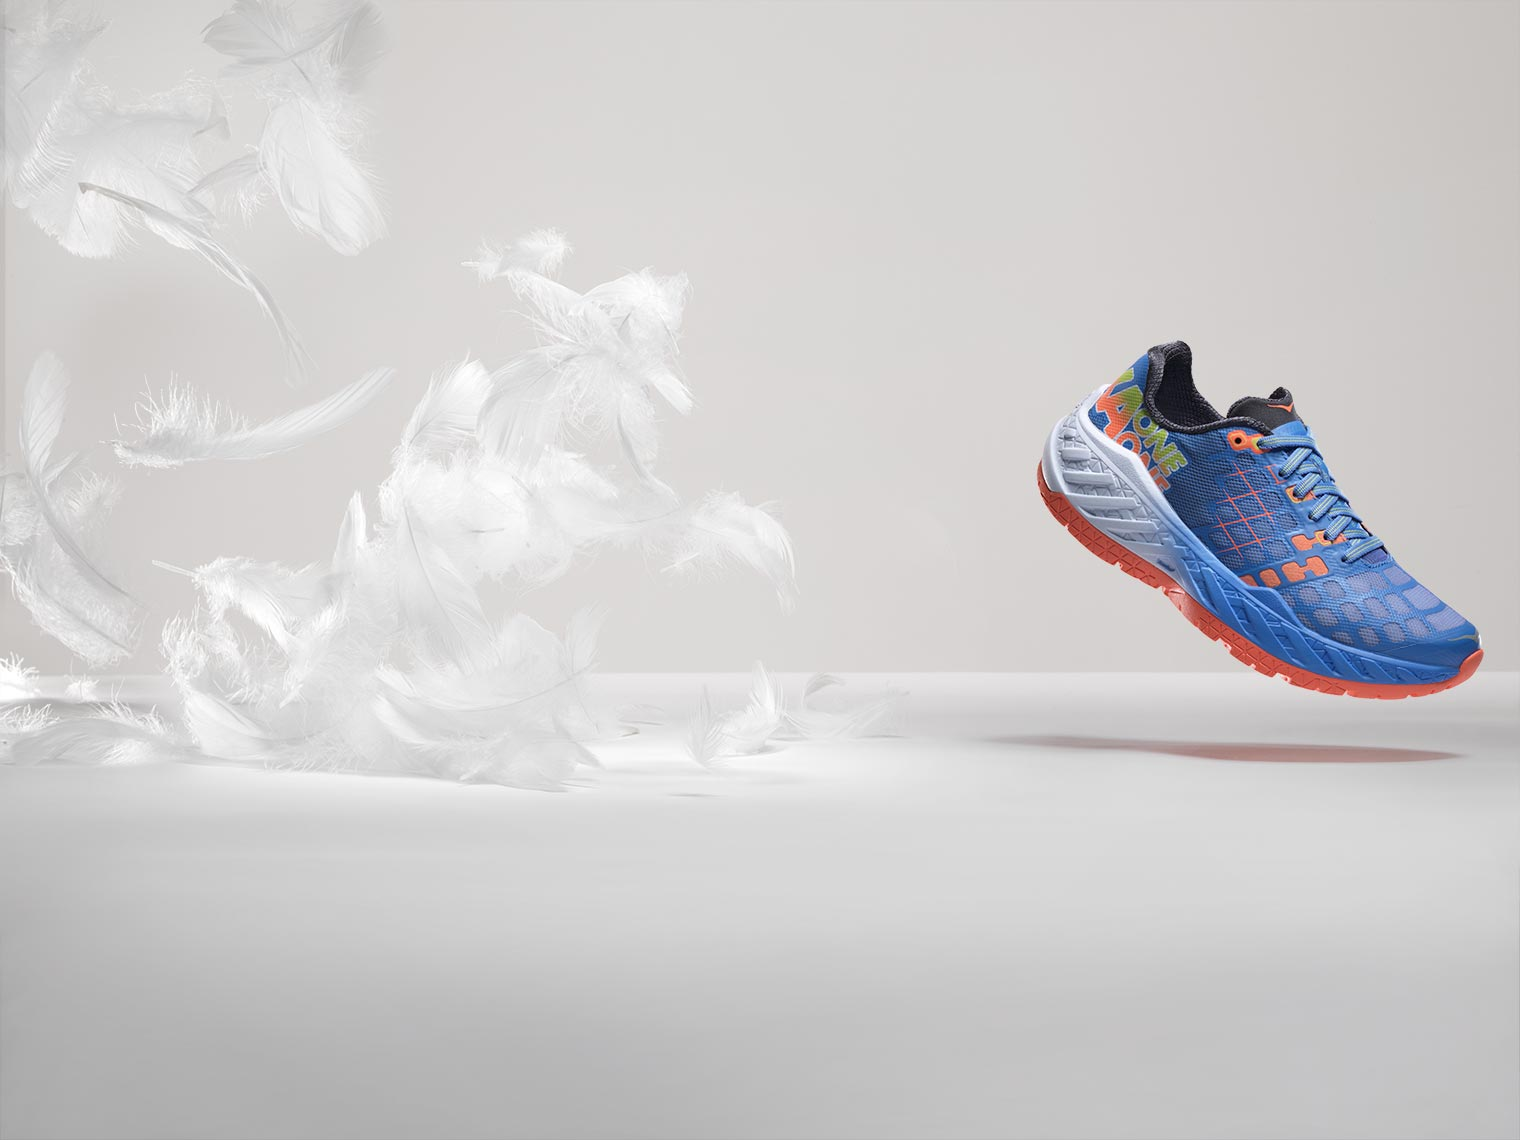 hoka one one light as a feather running shoe